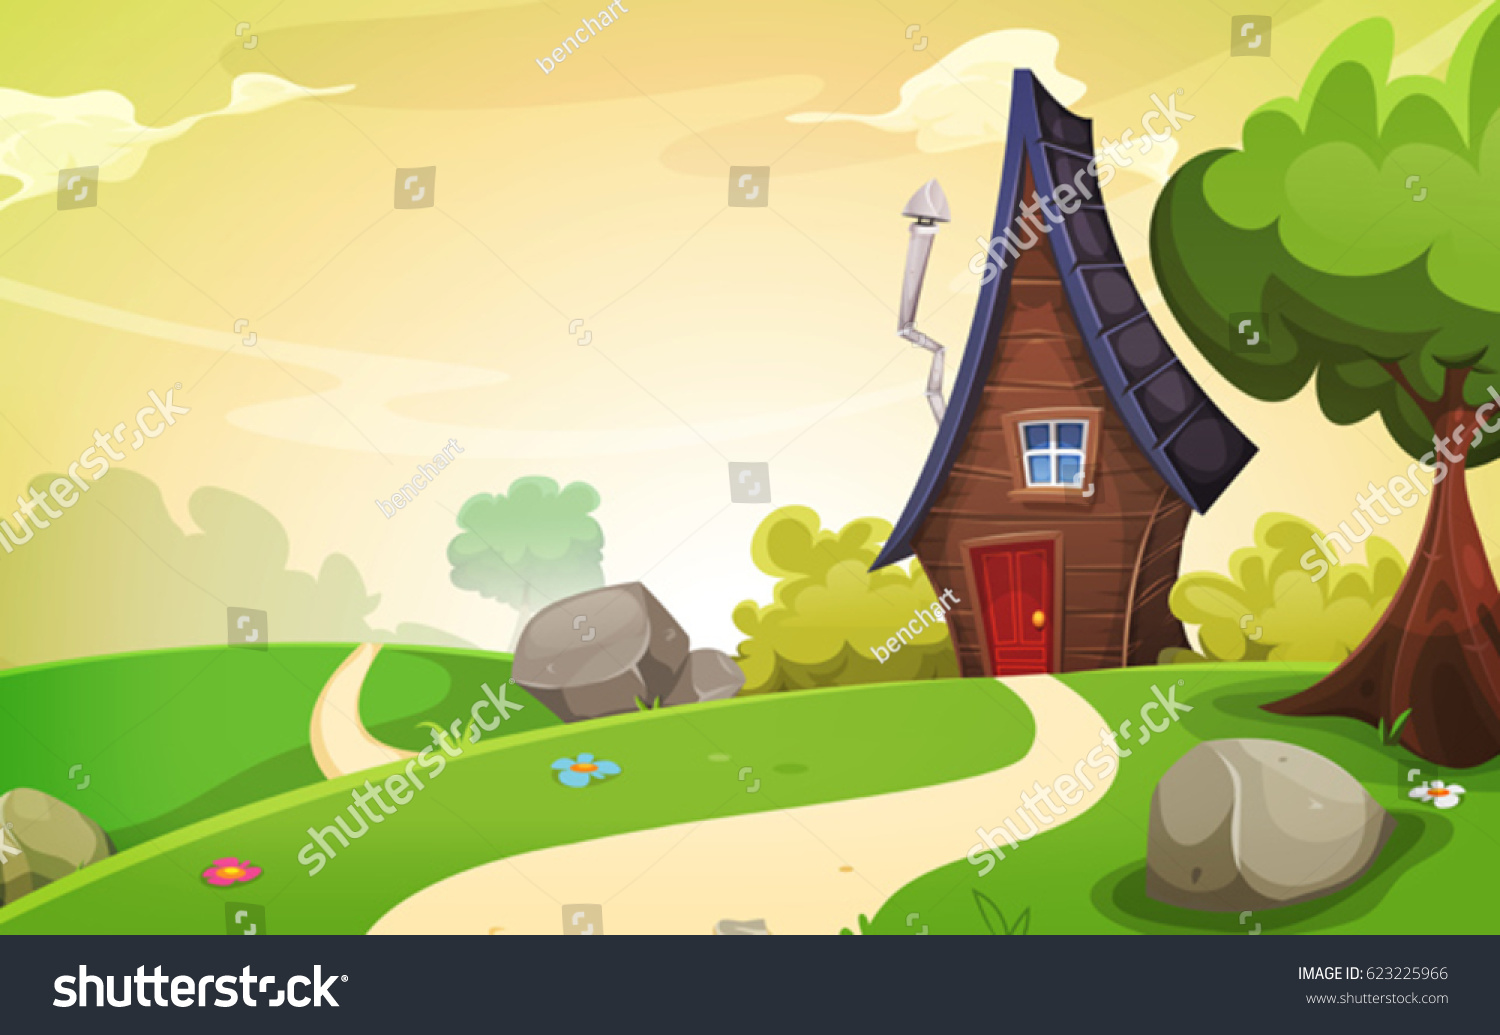 House Inside Spring Landscape/ Illustration of a cartoon spring or summer season landscape with country road leading to a fairy little house #623225966